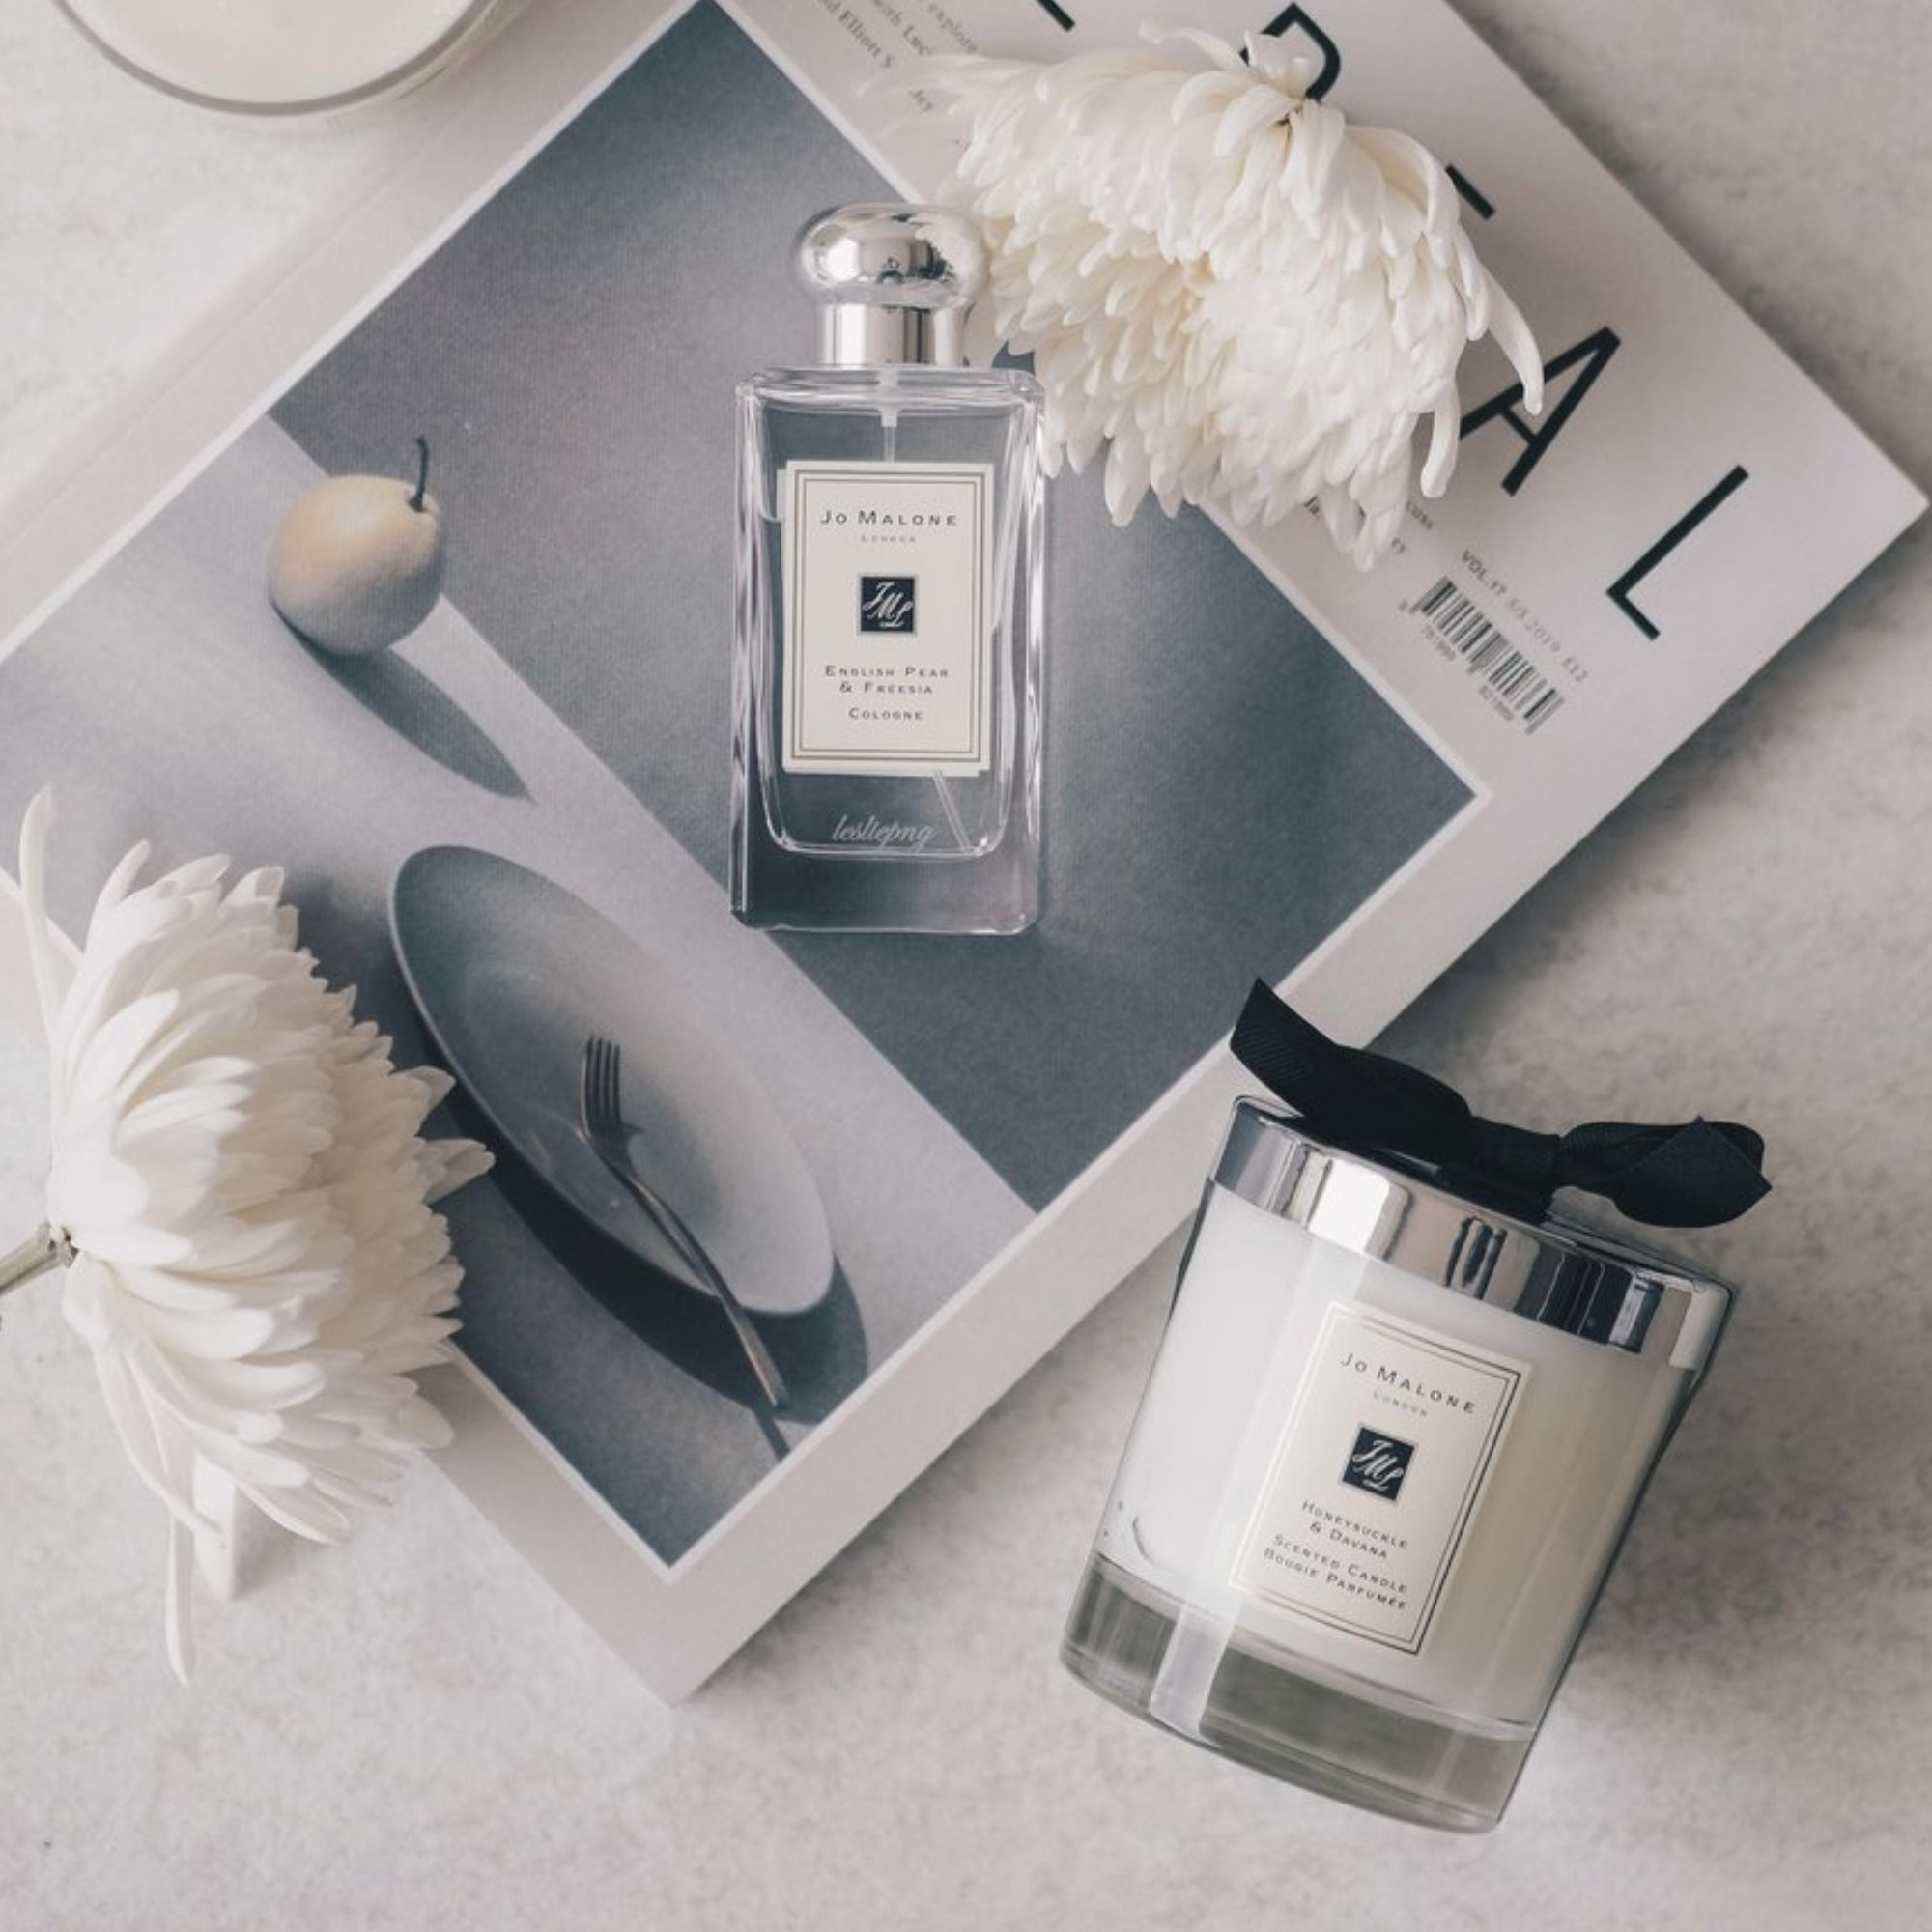 Jo Malone candles and scents